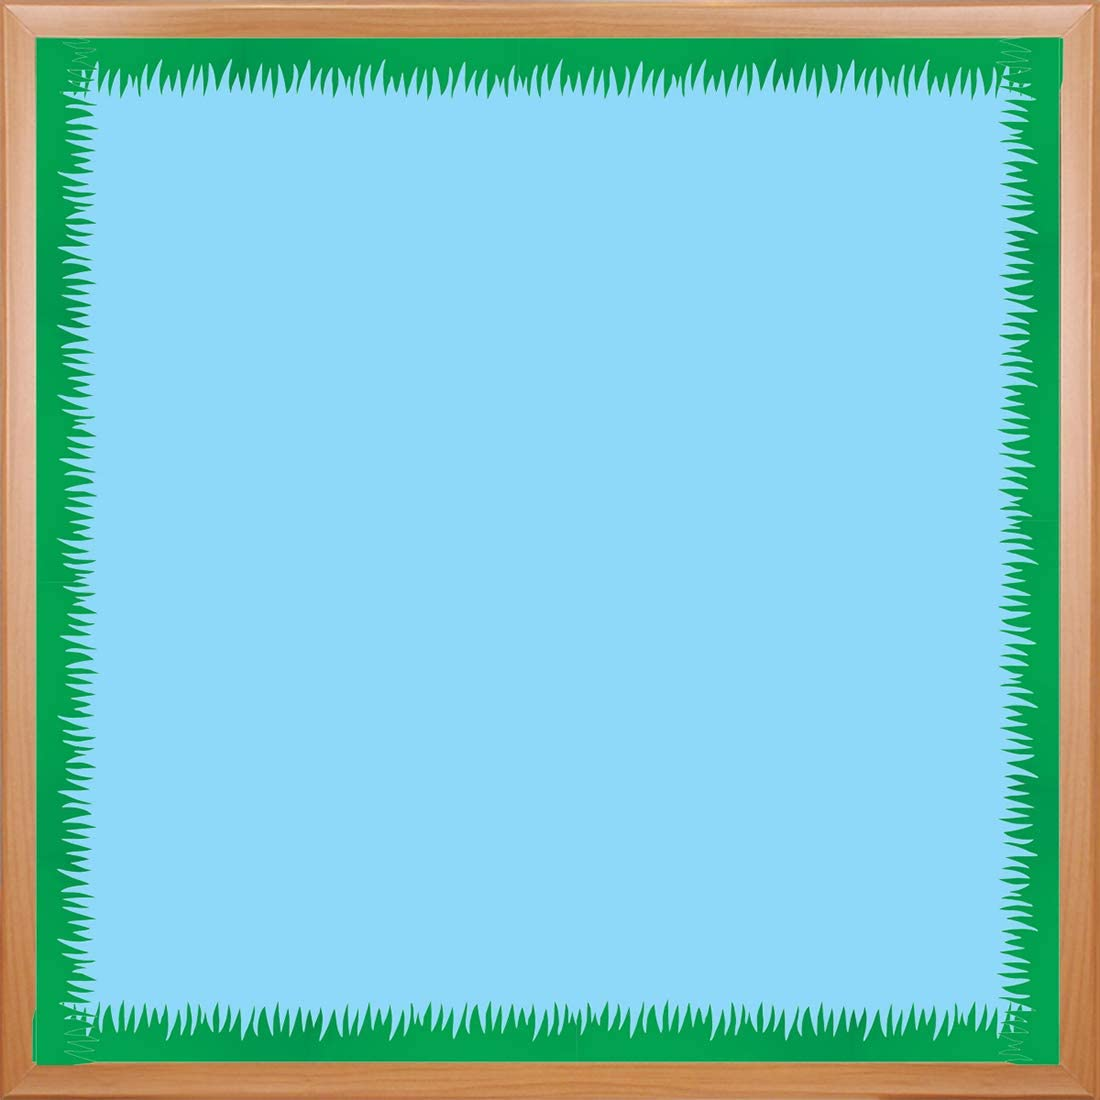 Hygloss Products, Inc Die-Cut Bulletin Board Border Green Grass Design - Classroom Decoration – Easter, Spring or Summer Crafts - 3 x 36 Inches, 24 Pack